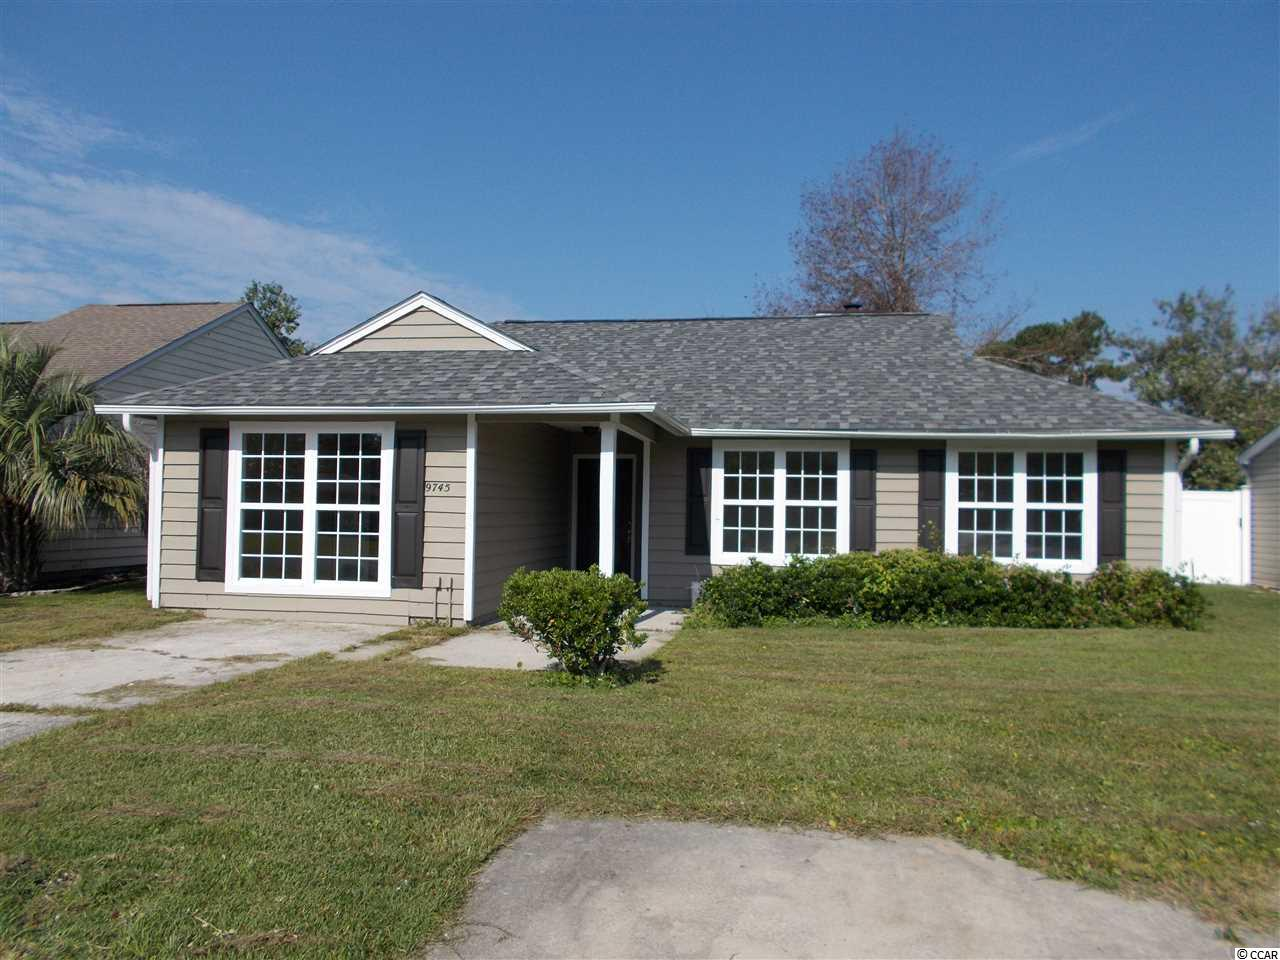 Ranch for Sale at 9745 KINGS GRANT DRIVE 9745 KINGS GRANT DRIVE Murrells Inlet, South Carolina 29576 United States